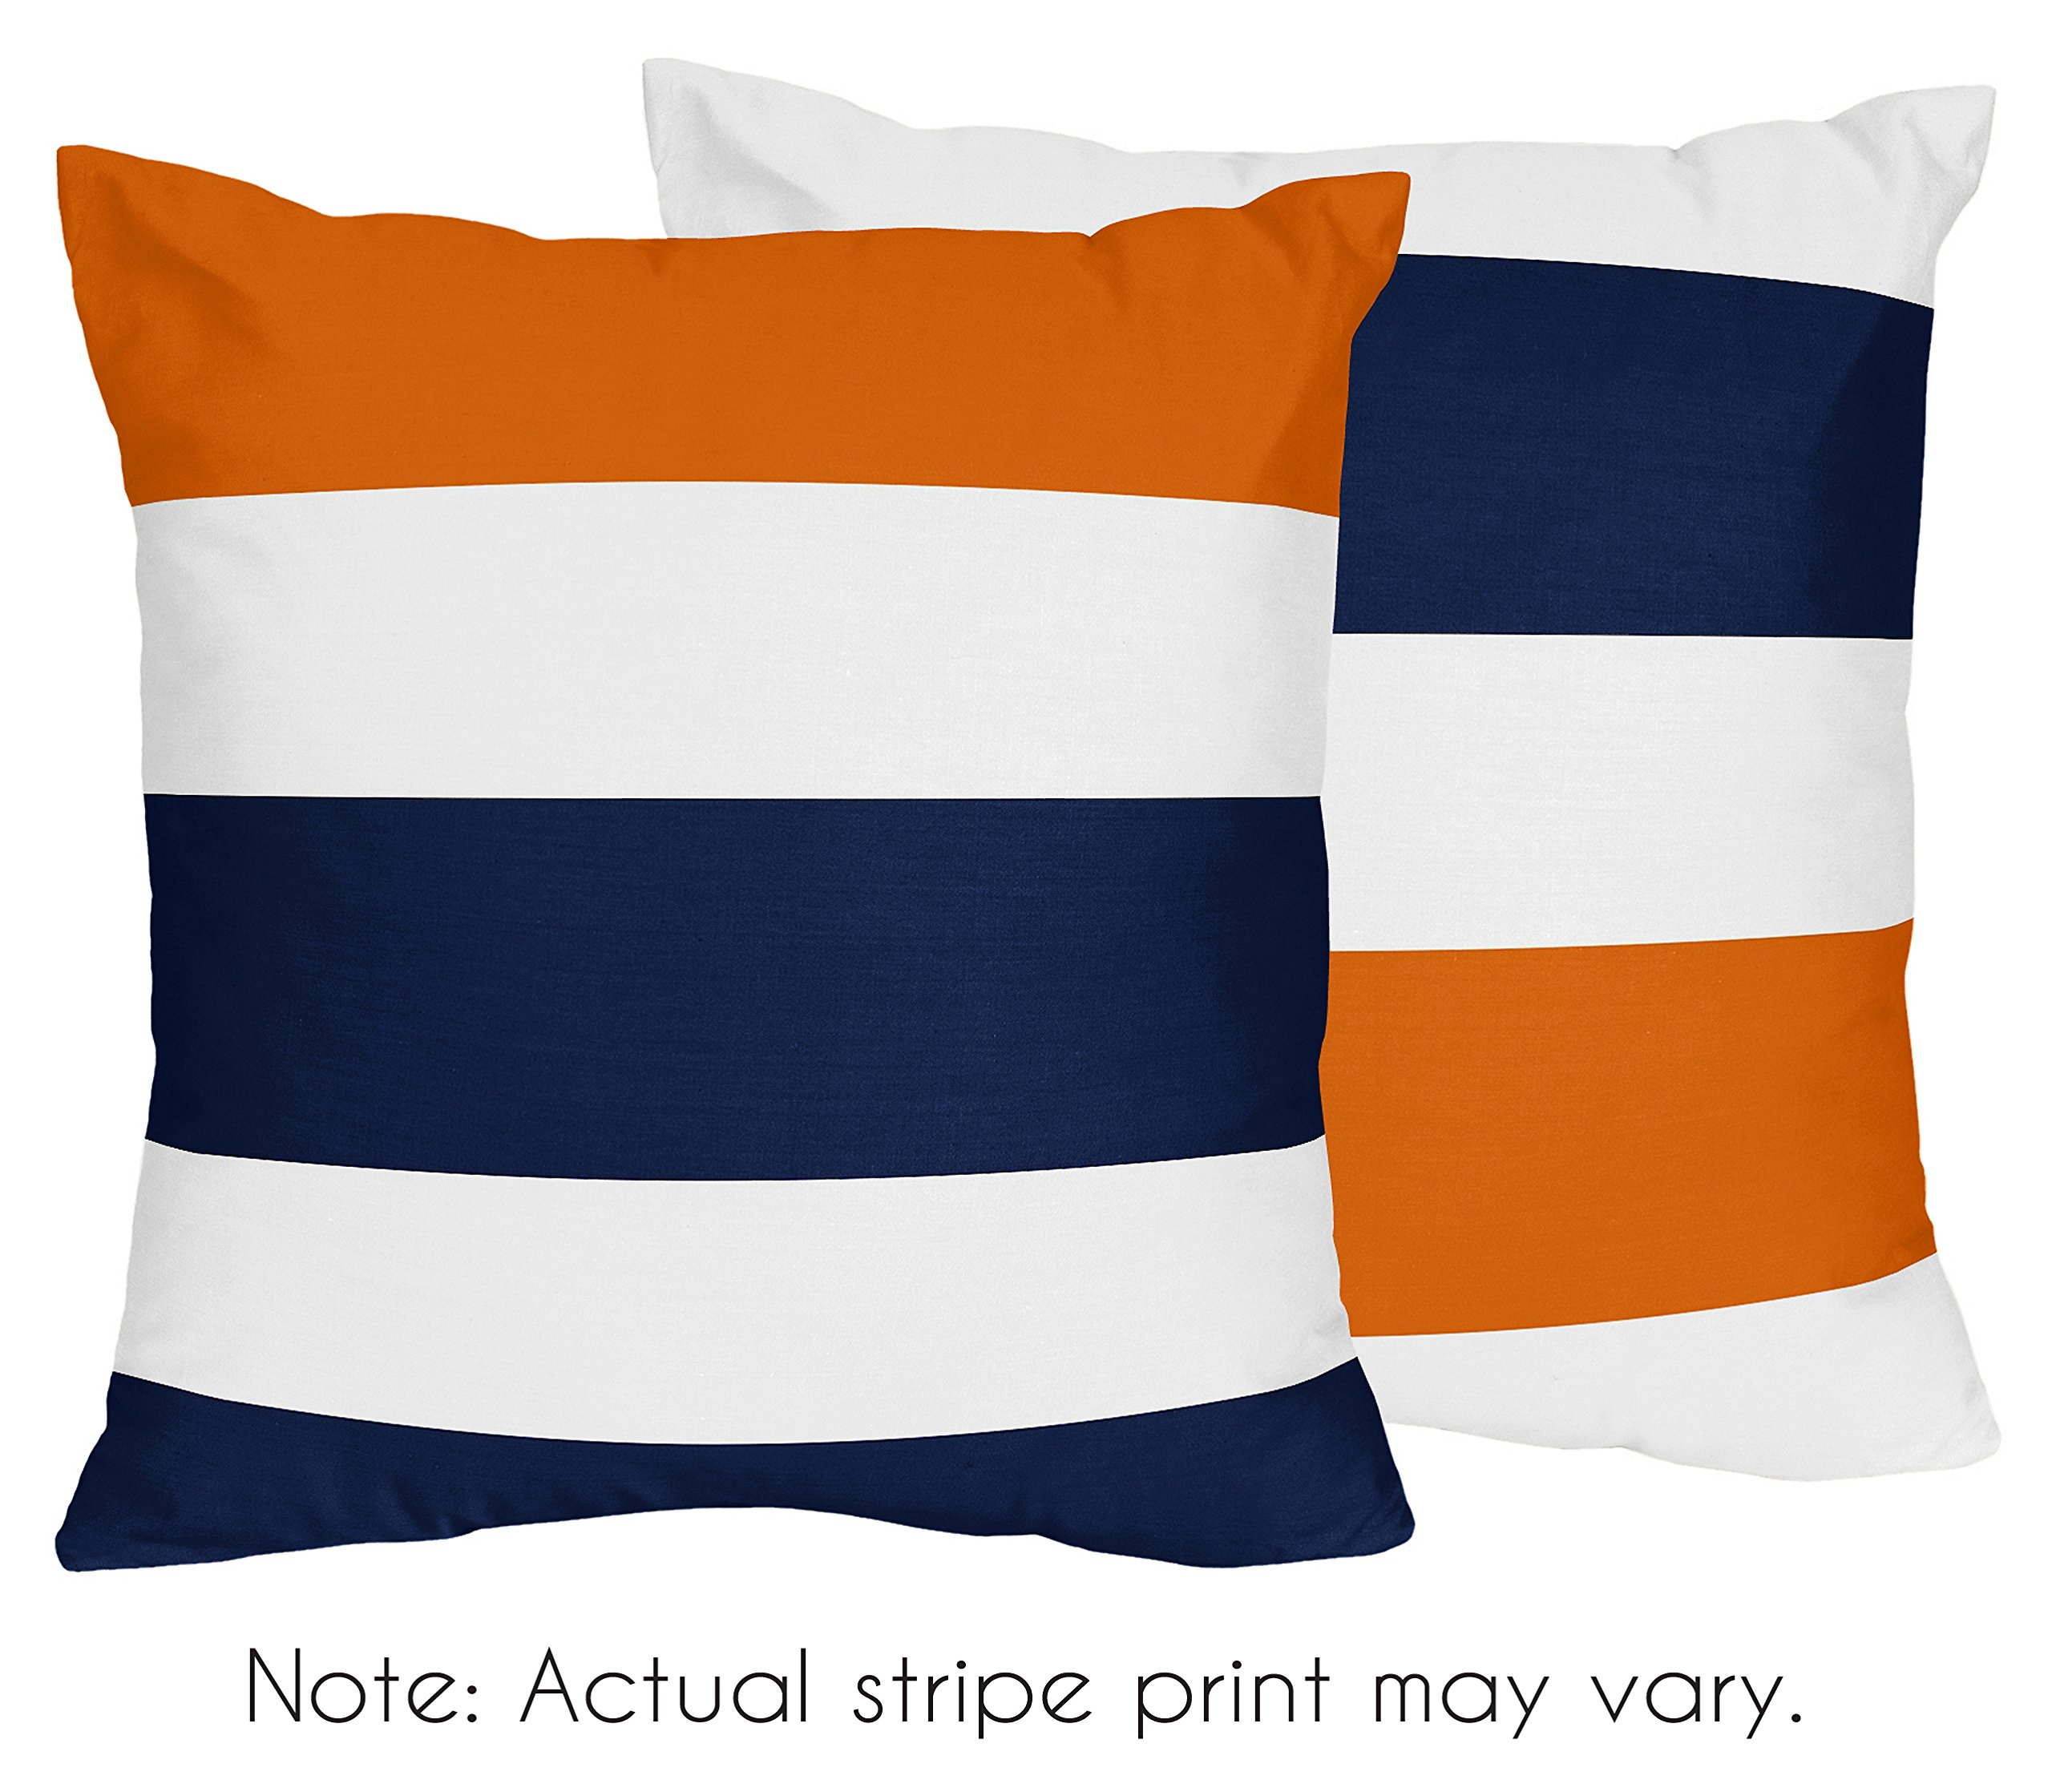 Sweet Jojo Designs 2-Piece Navy Blue, Orange and White Decorative Accent Throw Pillows for Stripe Collection by Sweet Jojo Designs